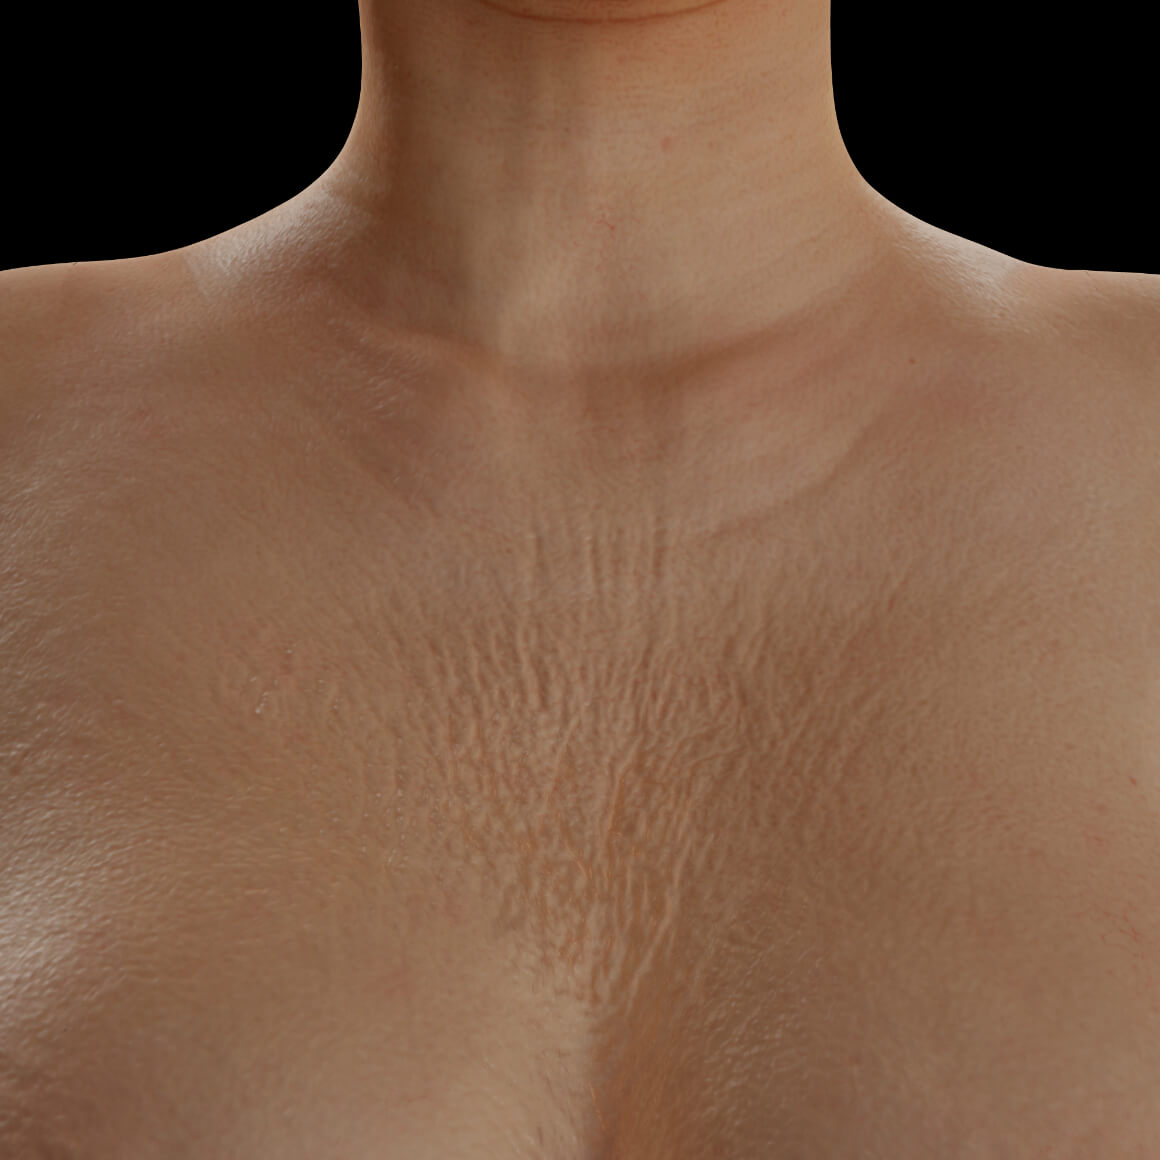 Female patient from Clinique Chloé facing front with sagging skin and wrinkles on the skin of the décolleté